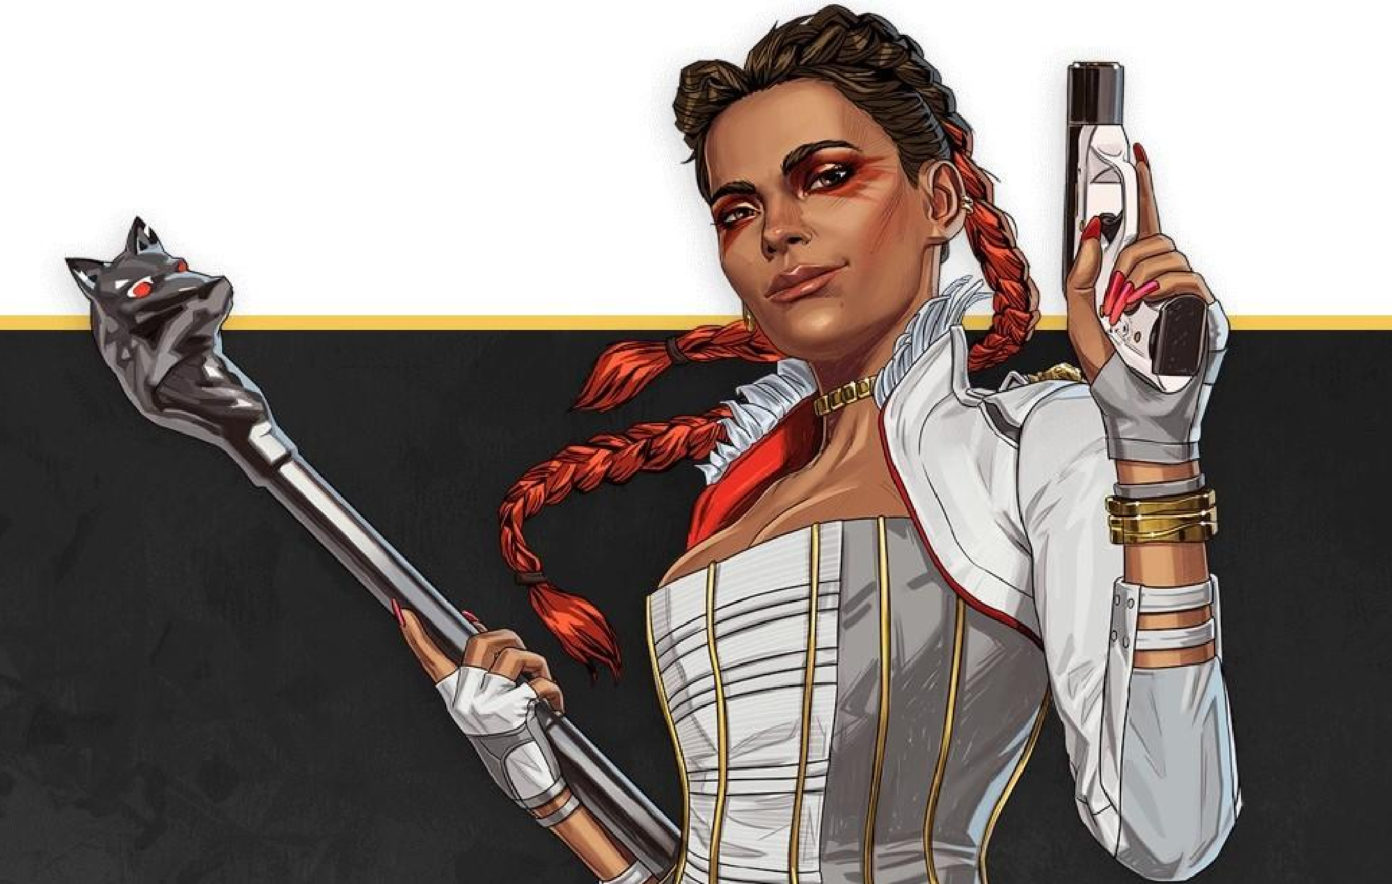 Apex Legends Season 5 trailer introduces new character